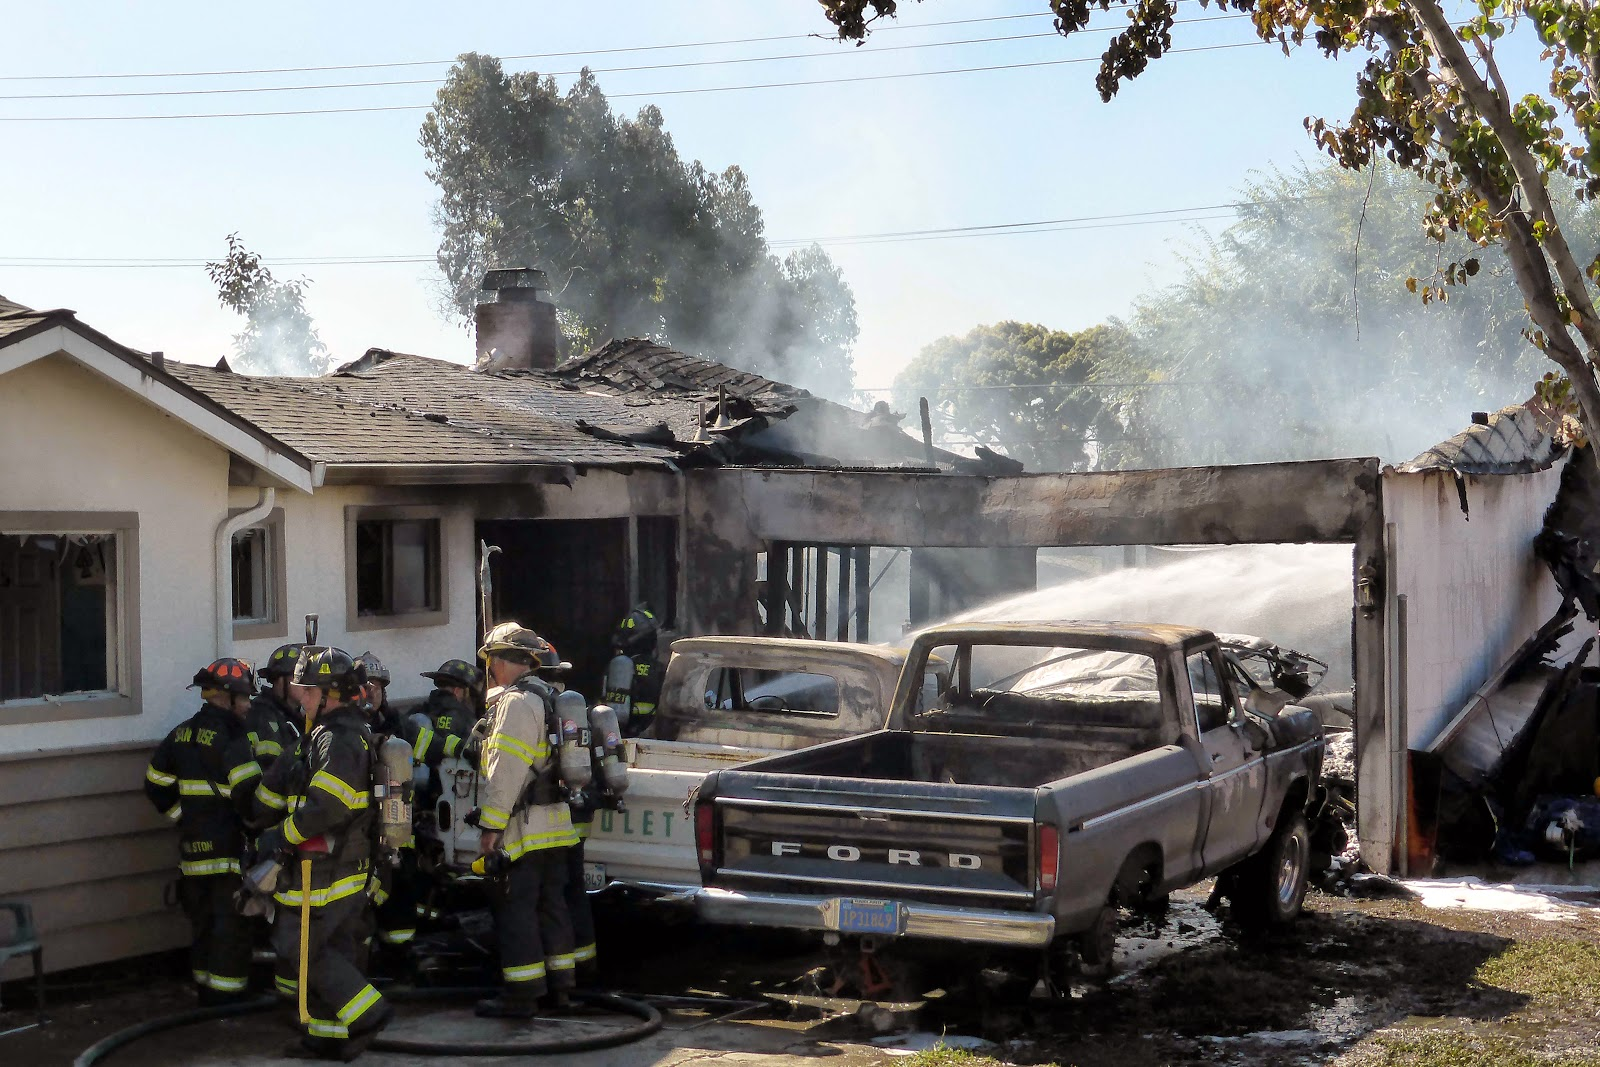 Fire Associates of Santa Clara Valley San Jose Garage Fire Destroys Vehicles and Attached Home